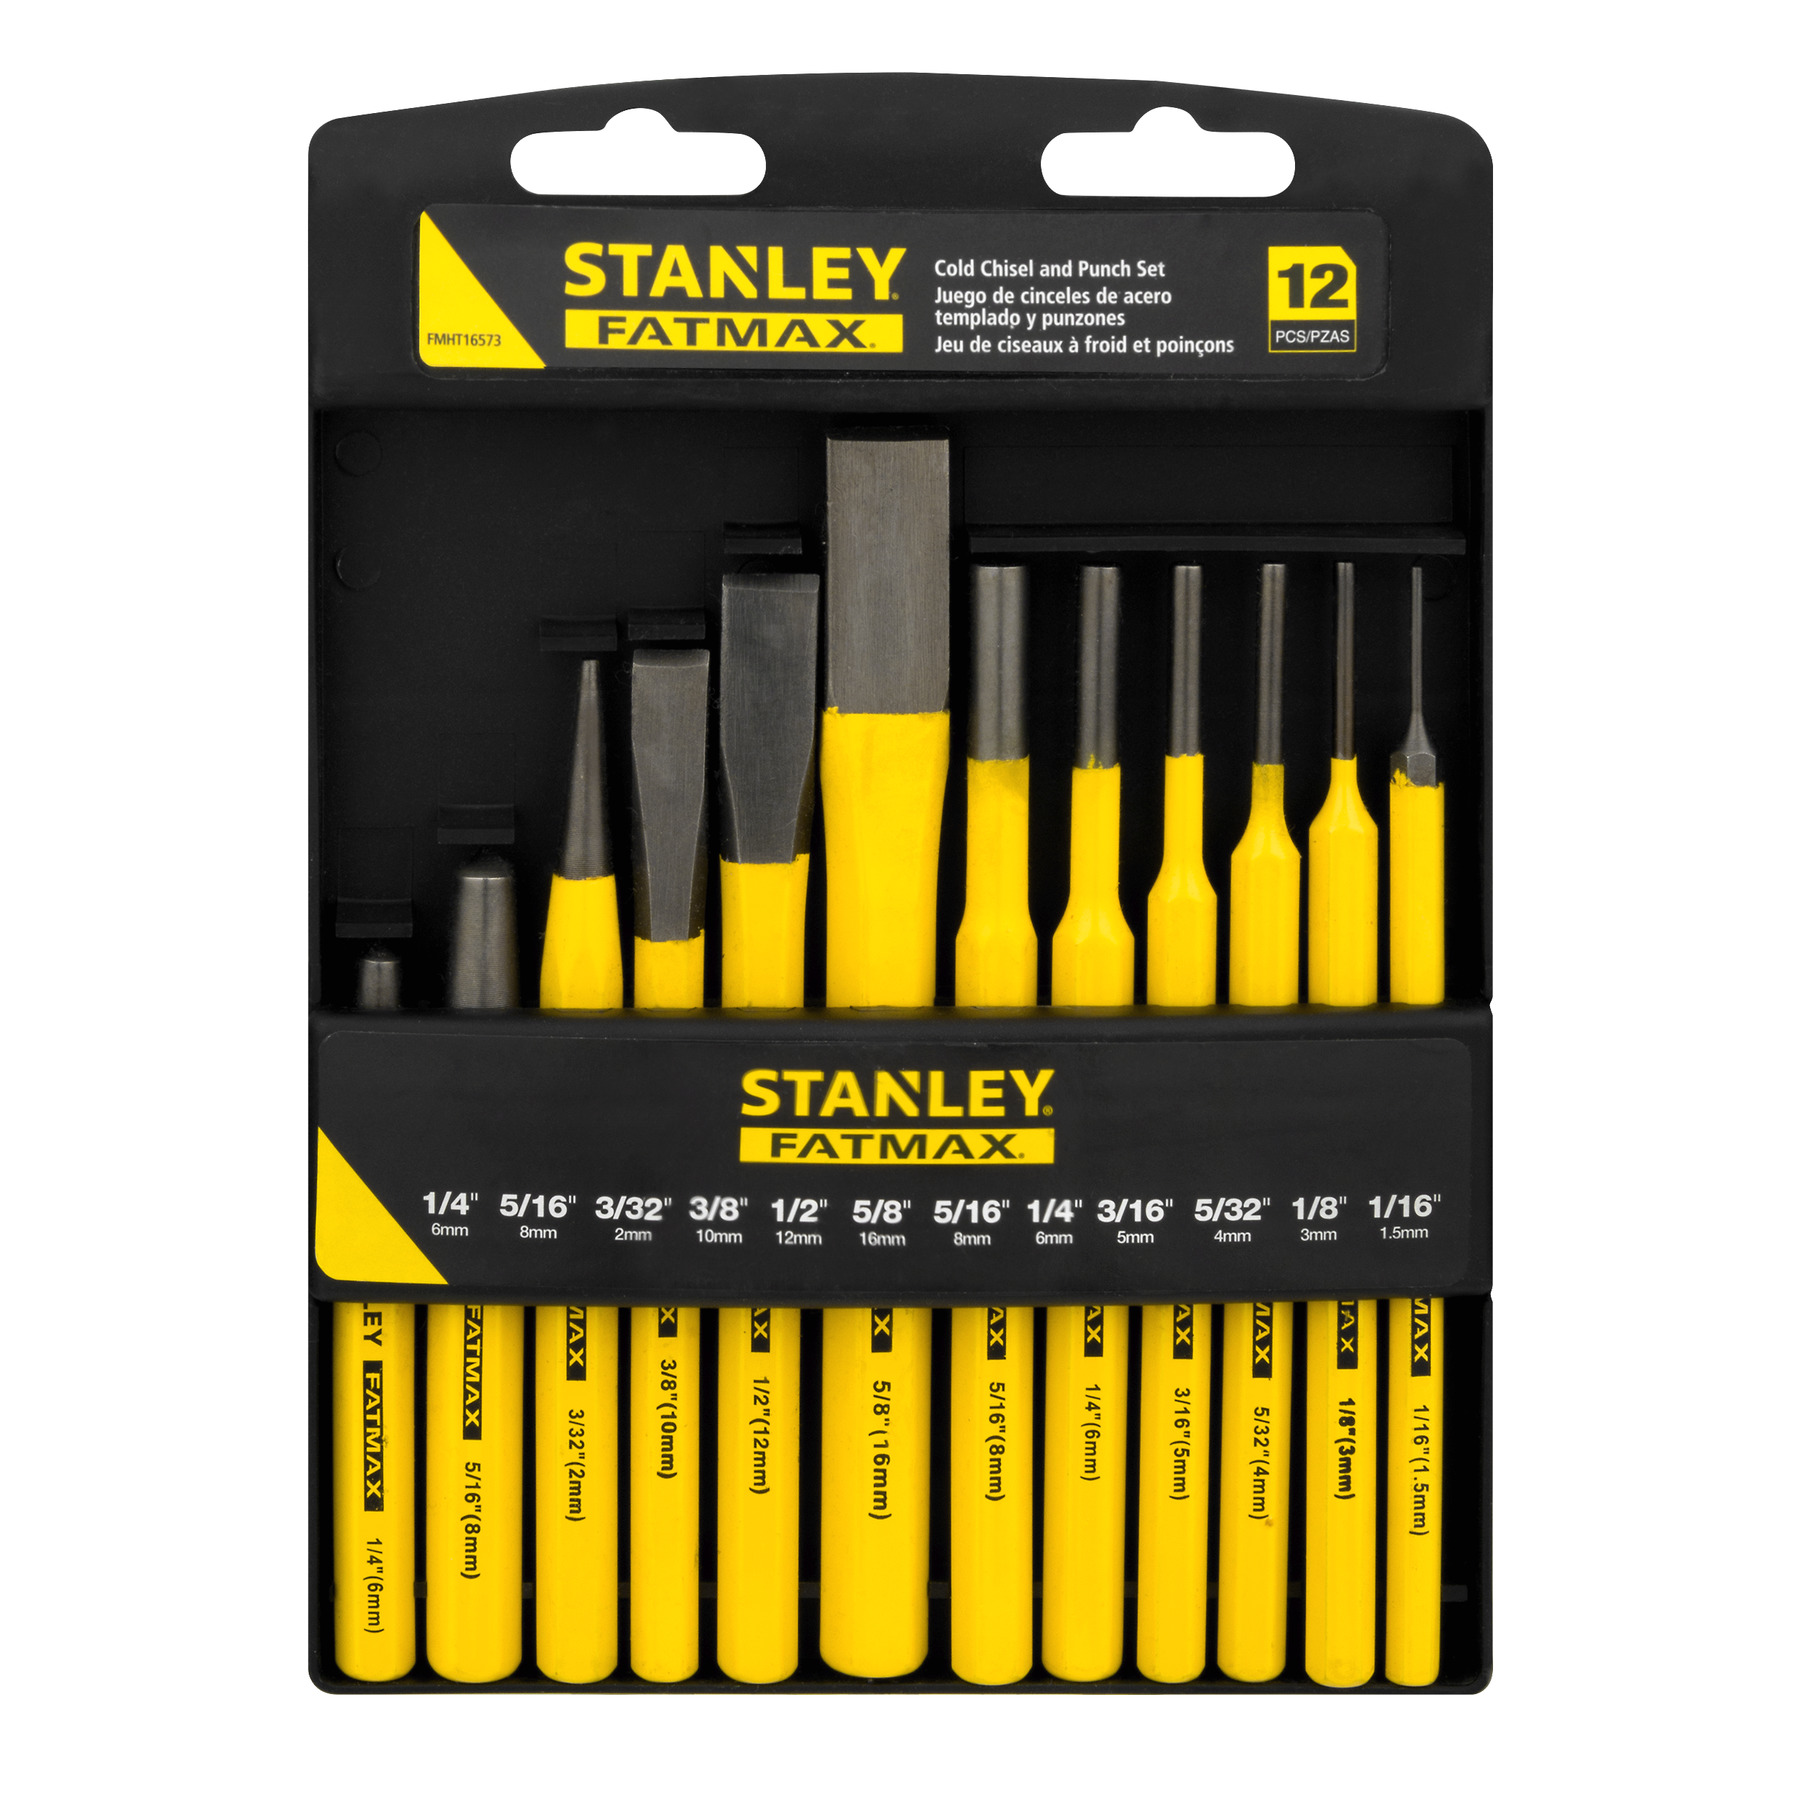 Stanley FatMax Cold Chisel And Punch Set 12 PC, 12.0 PIECE(S) by Stanley